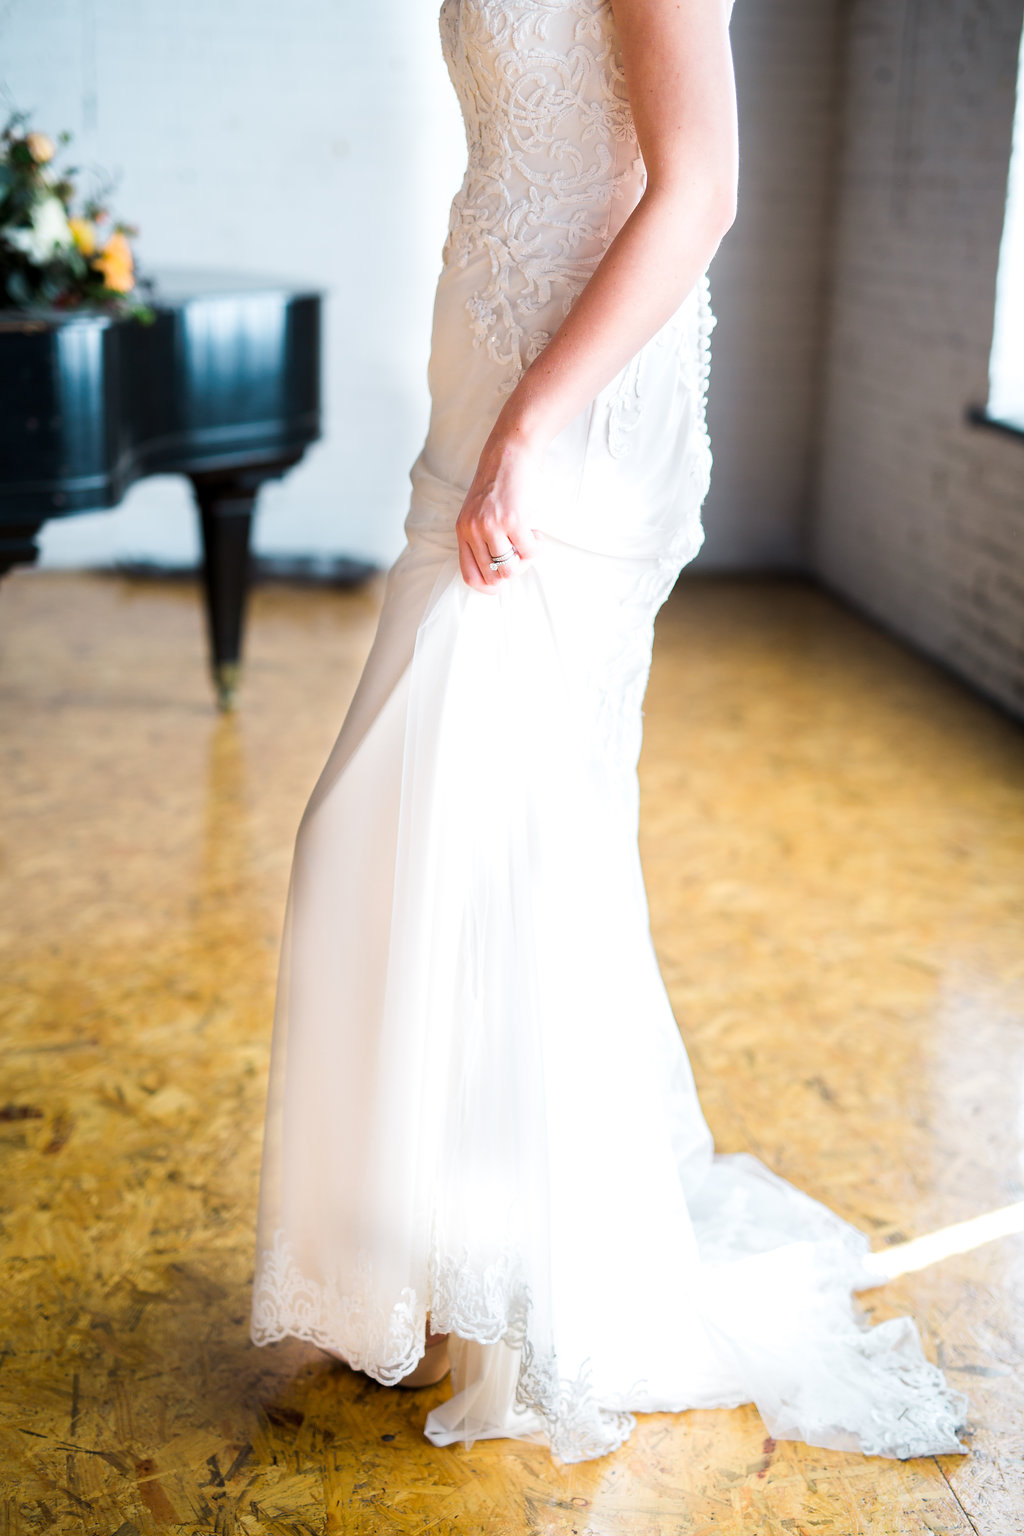 Gown: Lillian West by White Traditions Bridal House